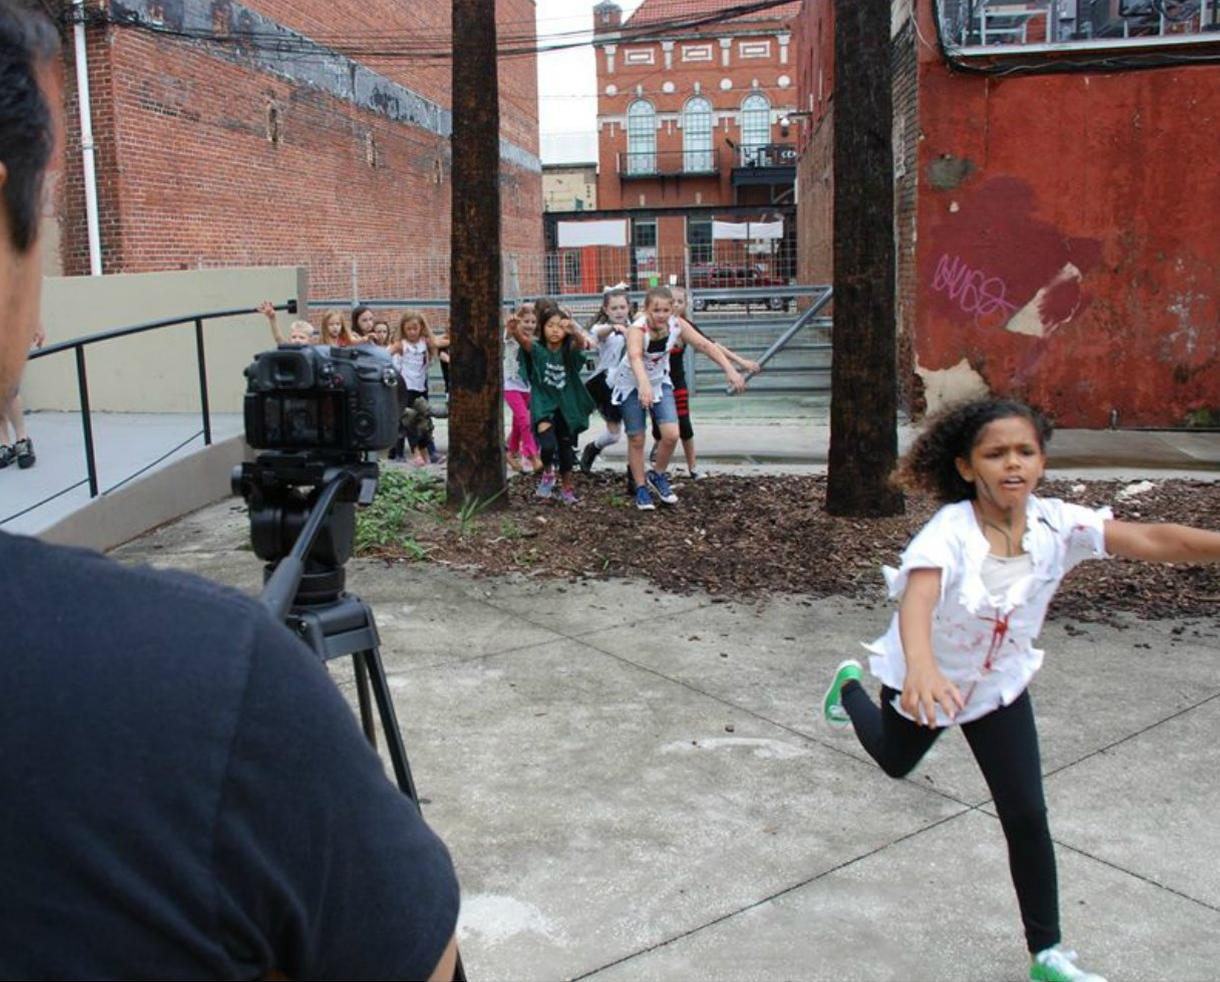 One Week of Gray Studios Make-A-Movie Camp in Atlanta or Washington, DC